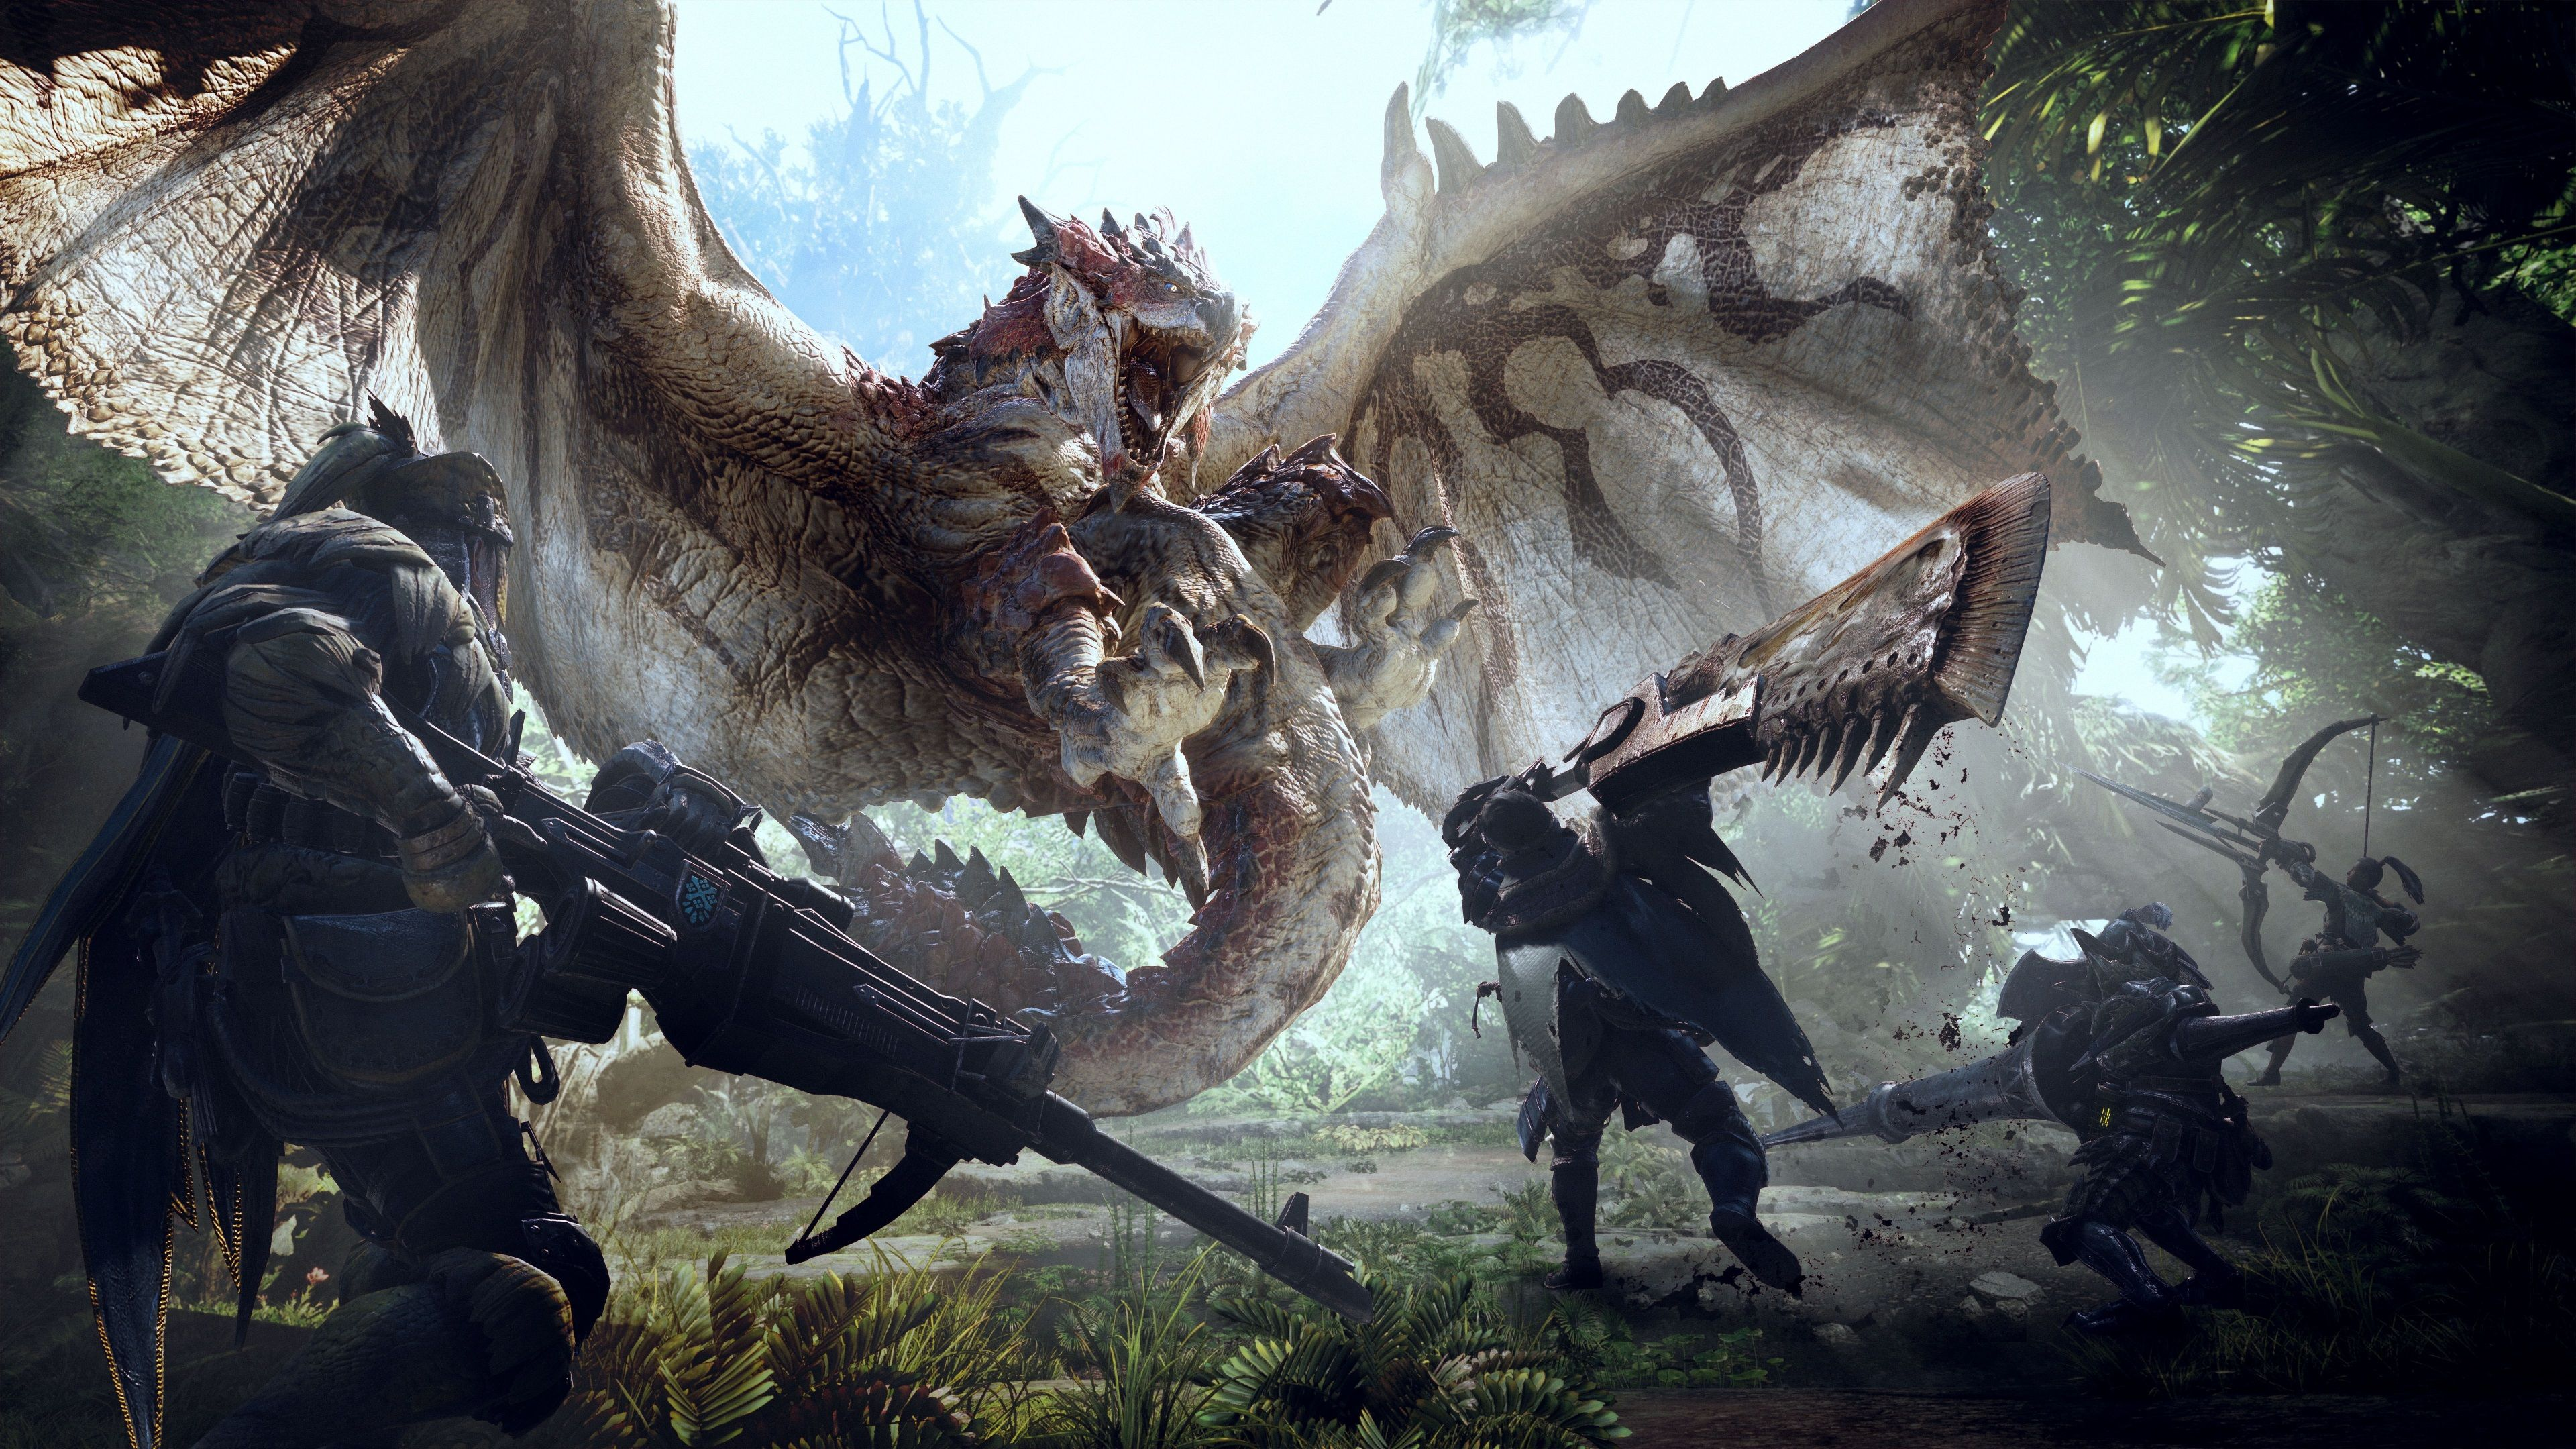 3840x2160 Monster Hunter World 4k Wallpaper Hd Computer Desktop Monster Hunter Monstros Dragoes Lendarios